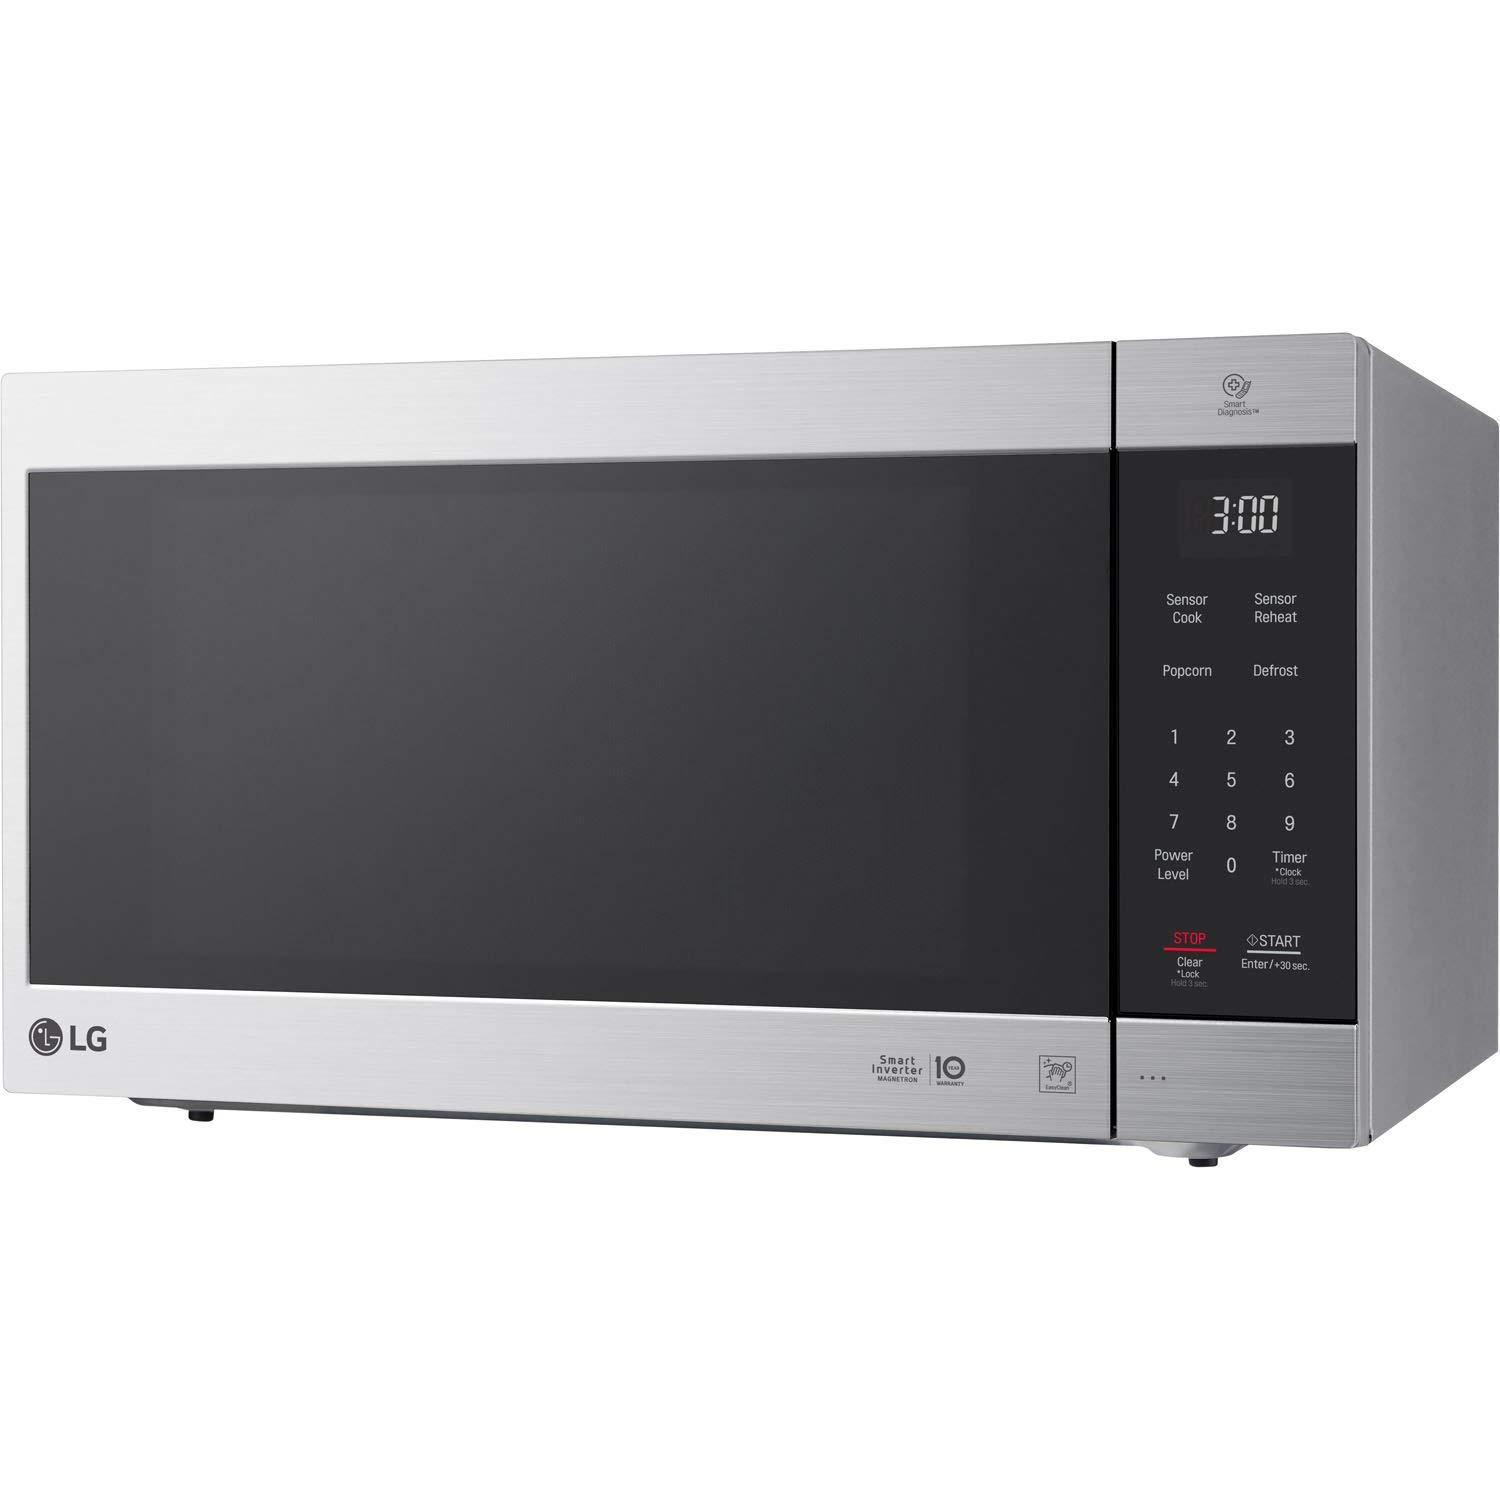 LG 2.0 Cu. Ft. NeoChef Countertop Microwave (LMC2075) Stainless Steel – New